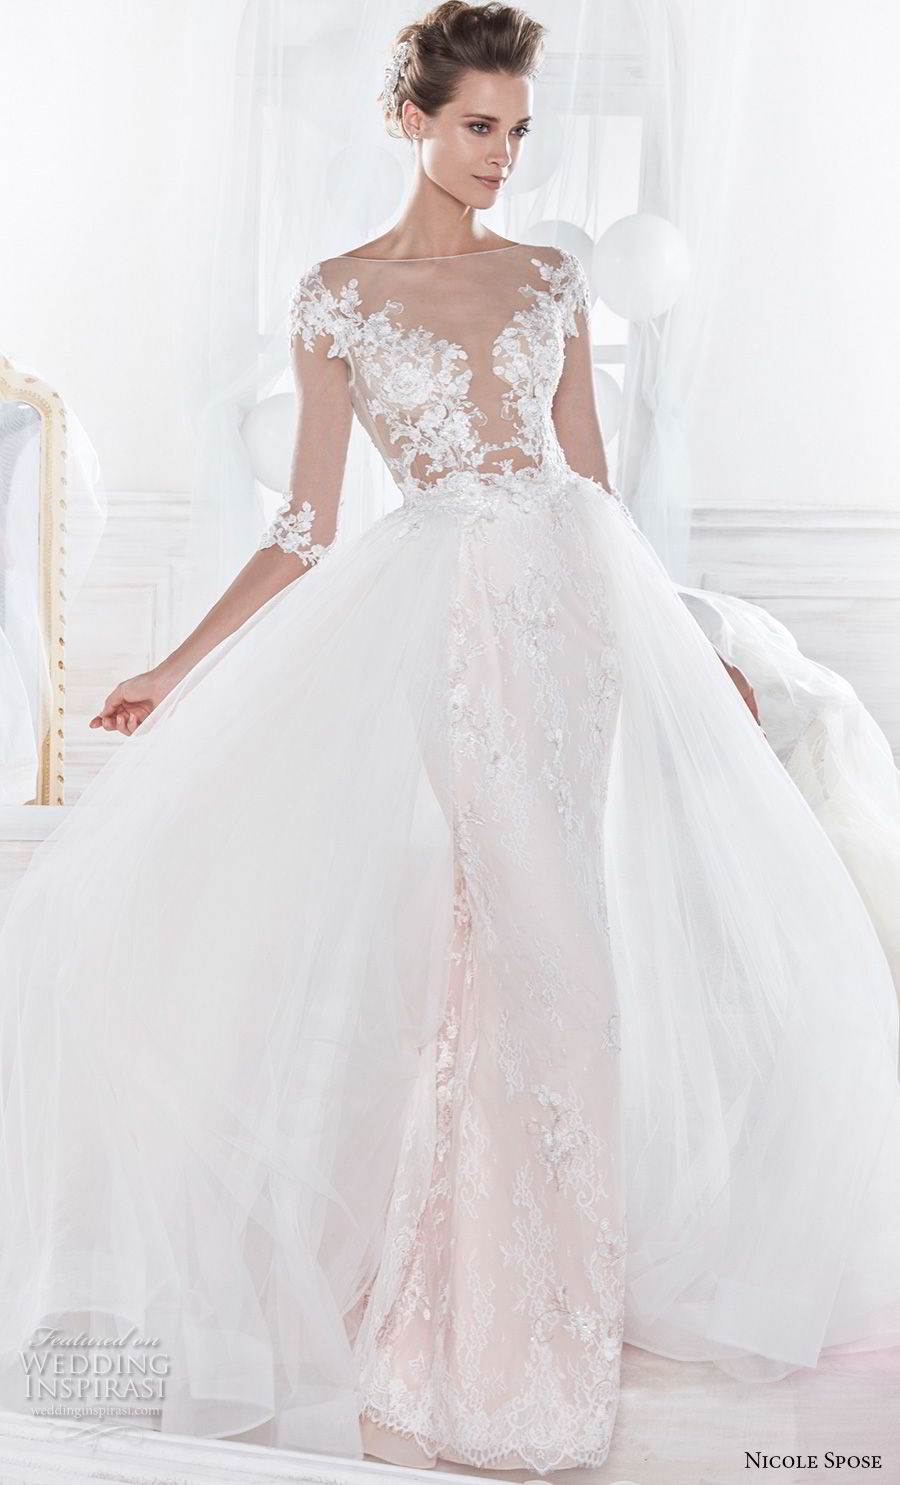 nicole spose 2018 bridal half sleeves sheer bateau v neck heavily embellished bodice princess sheath wedding dress a line overskirt sheer lace button back chapel train (15) mv